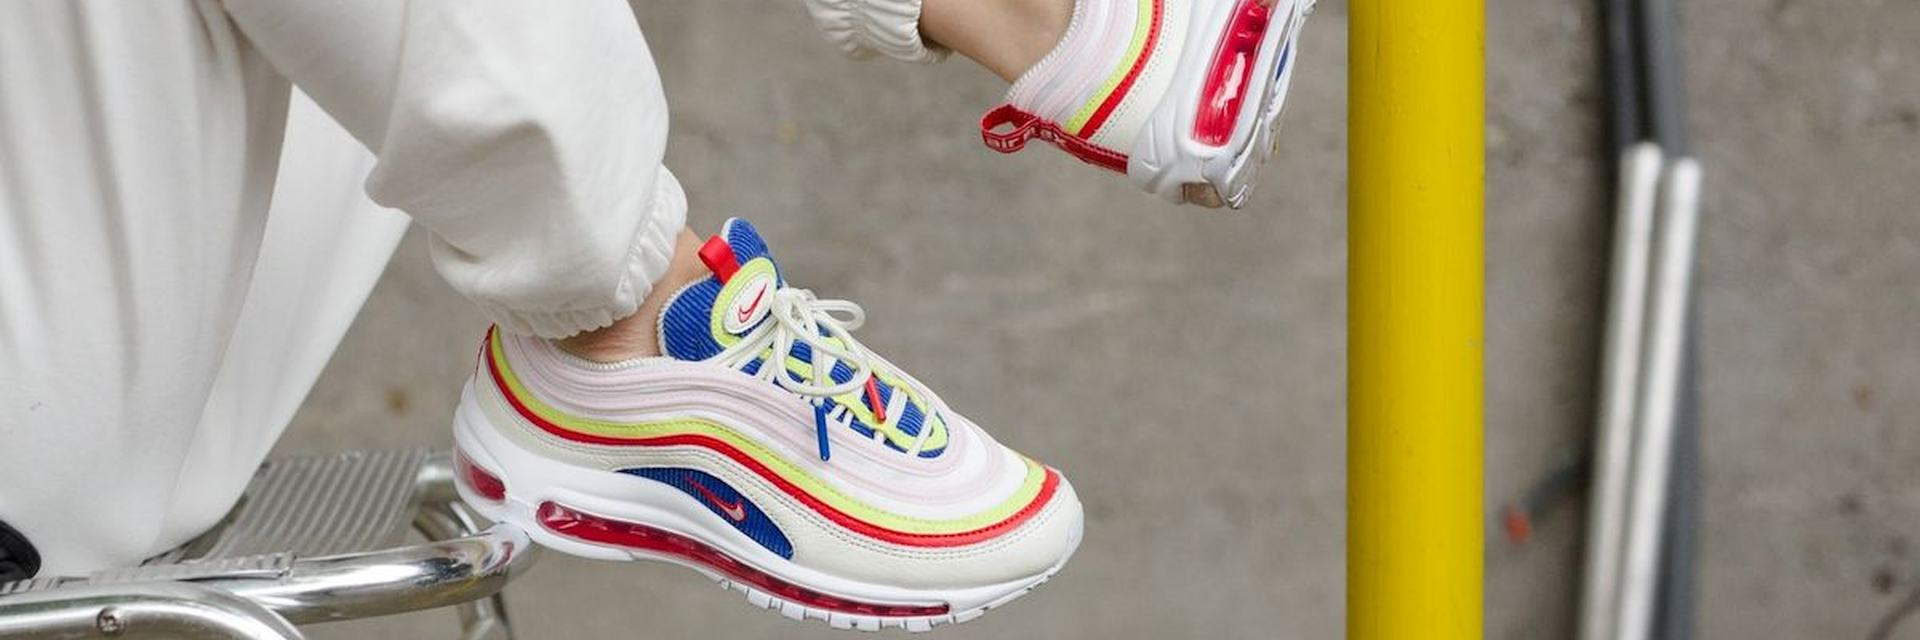 nike air max 97 dames rood